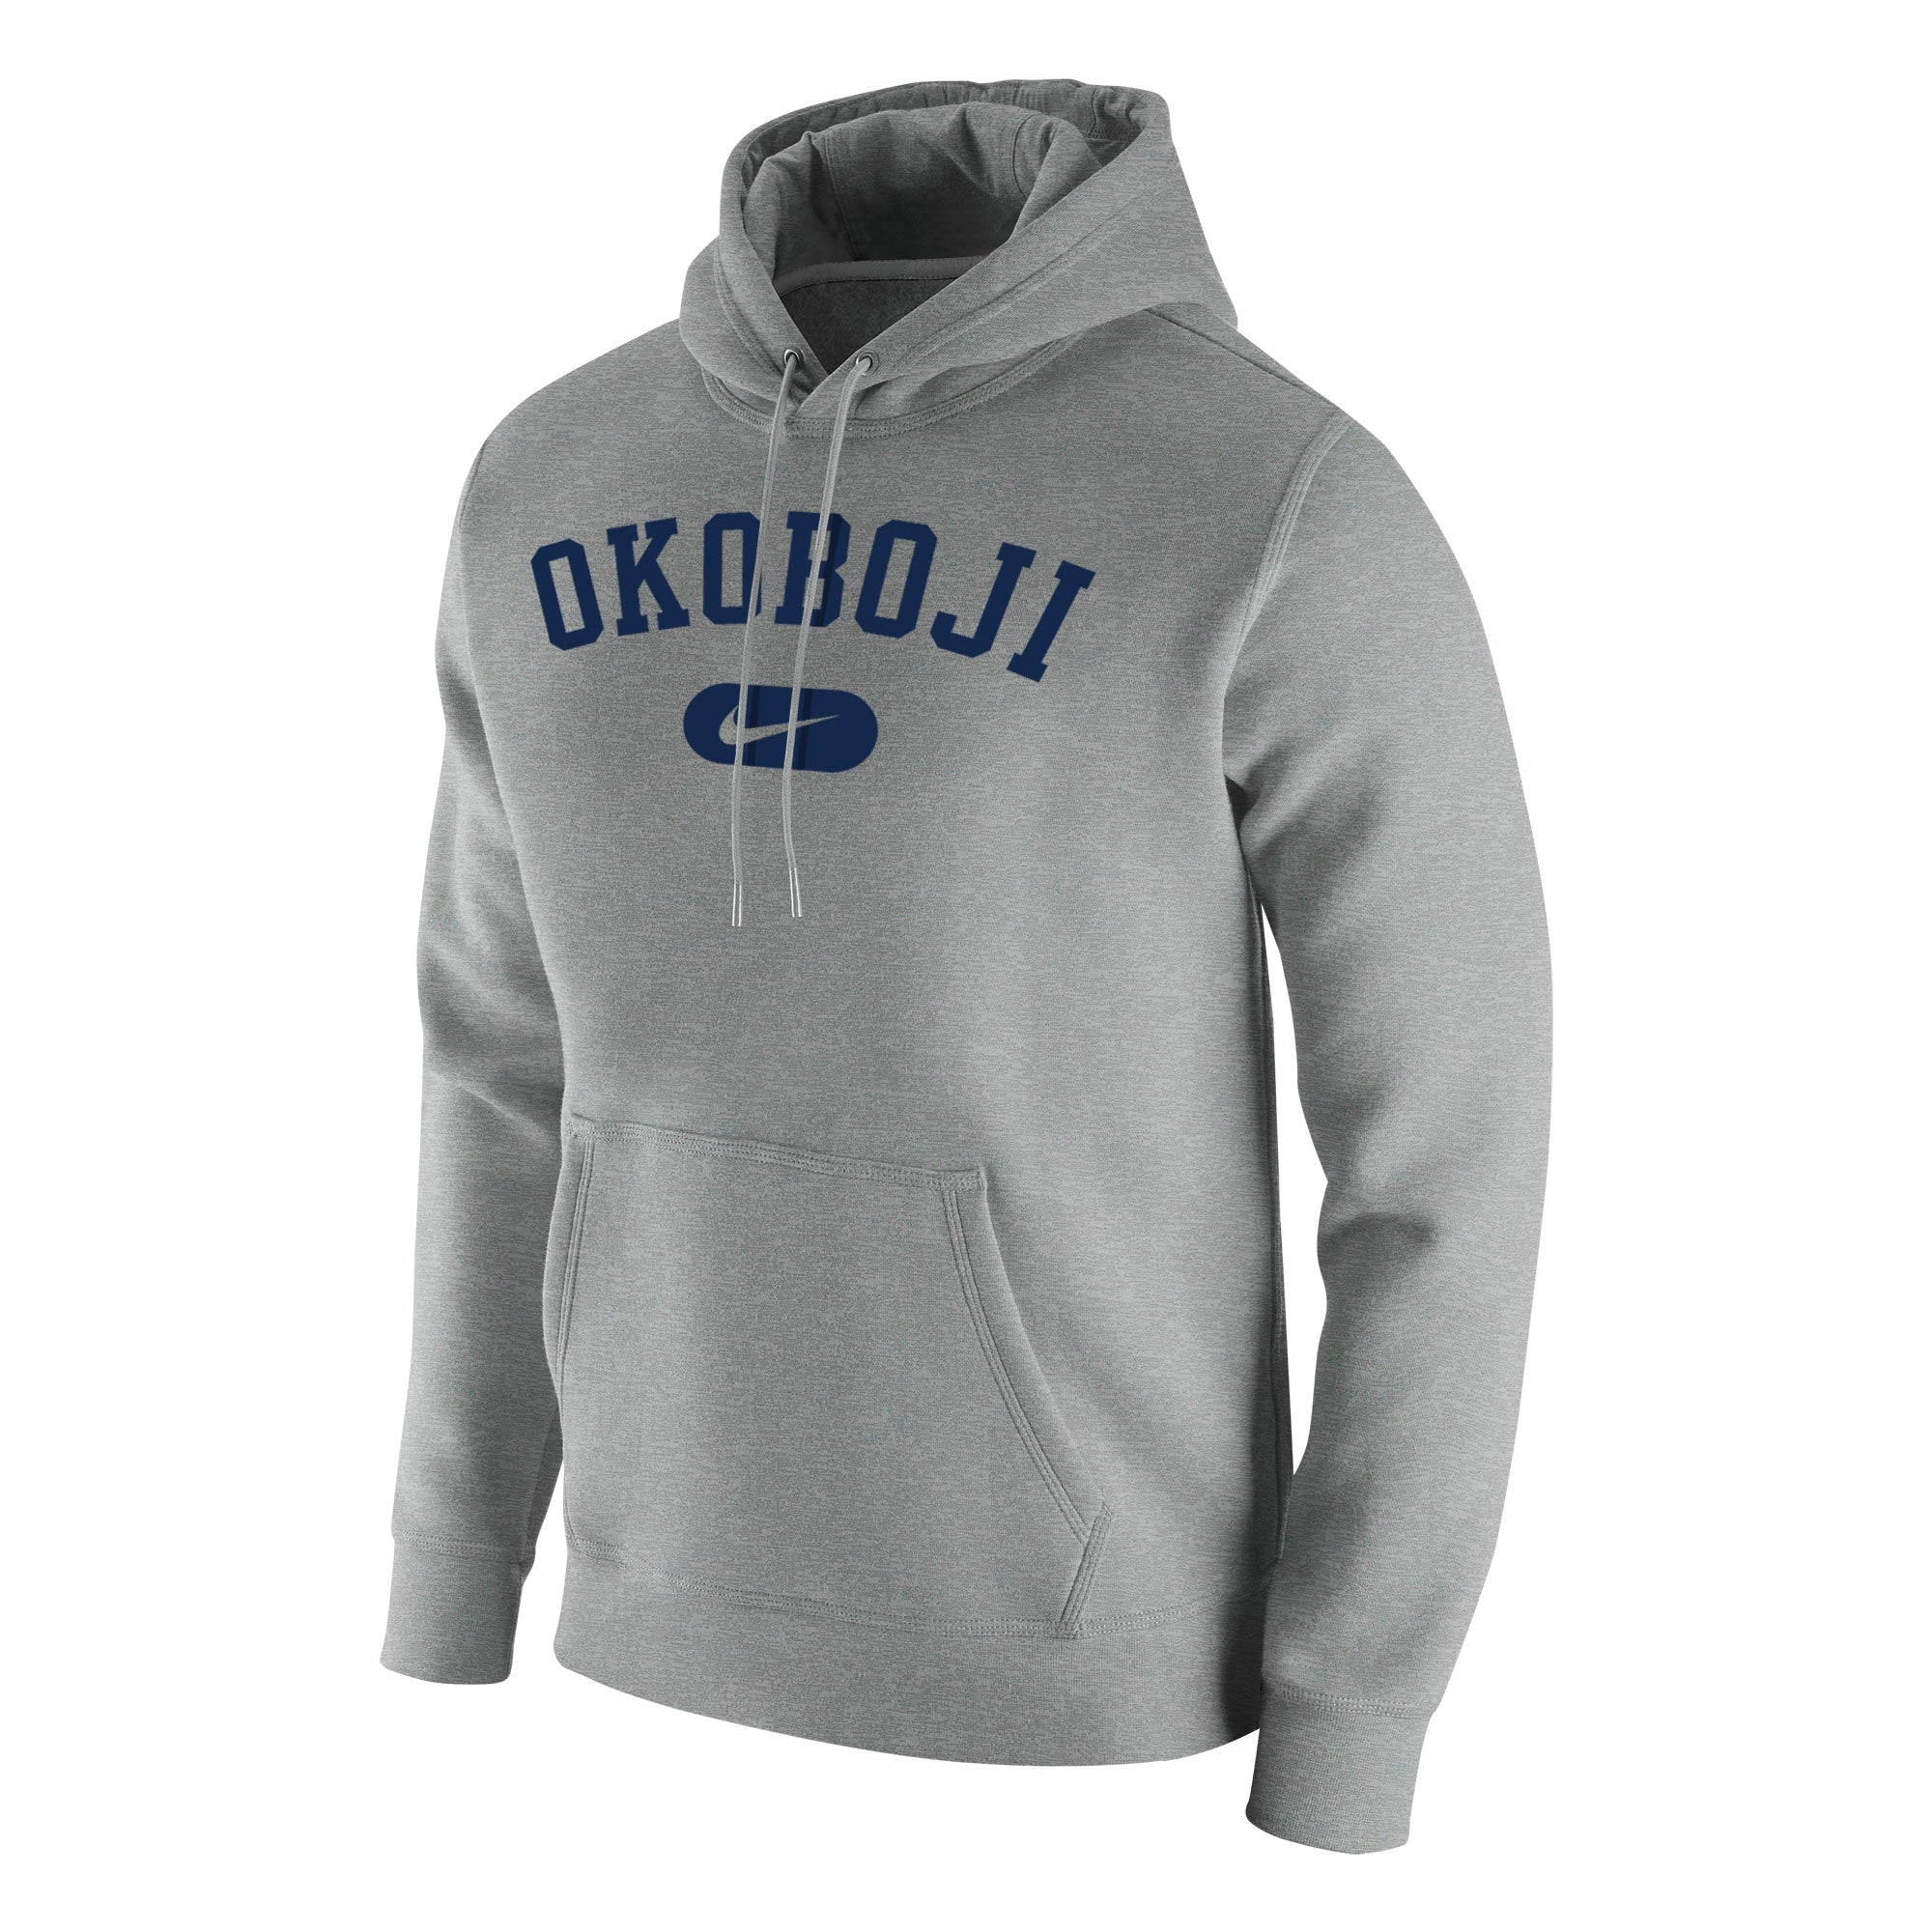 Stadium Club Fleece Hood - Dark Heather